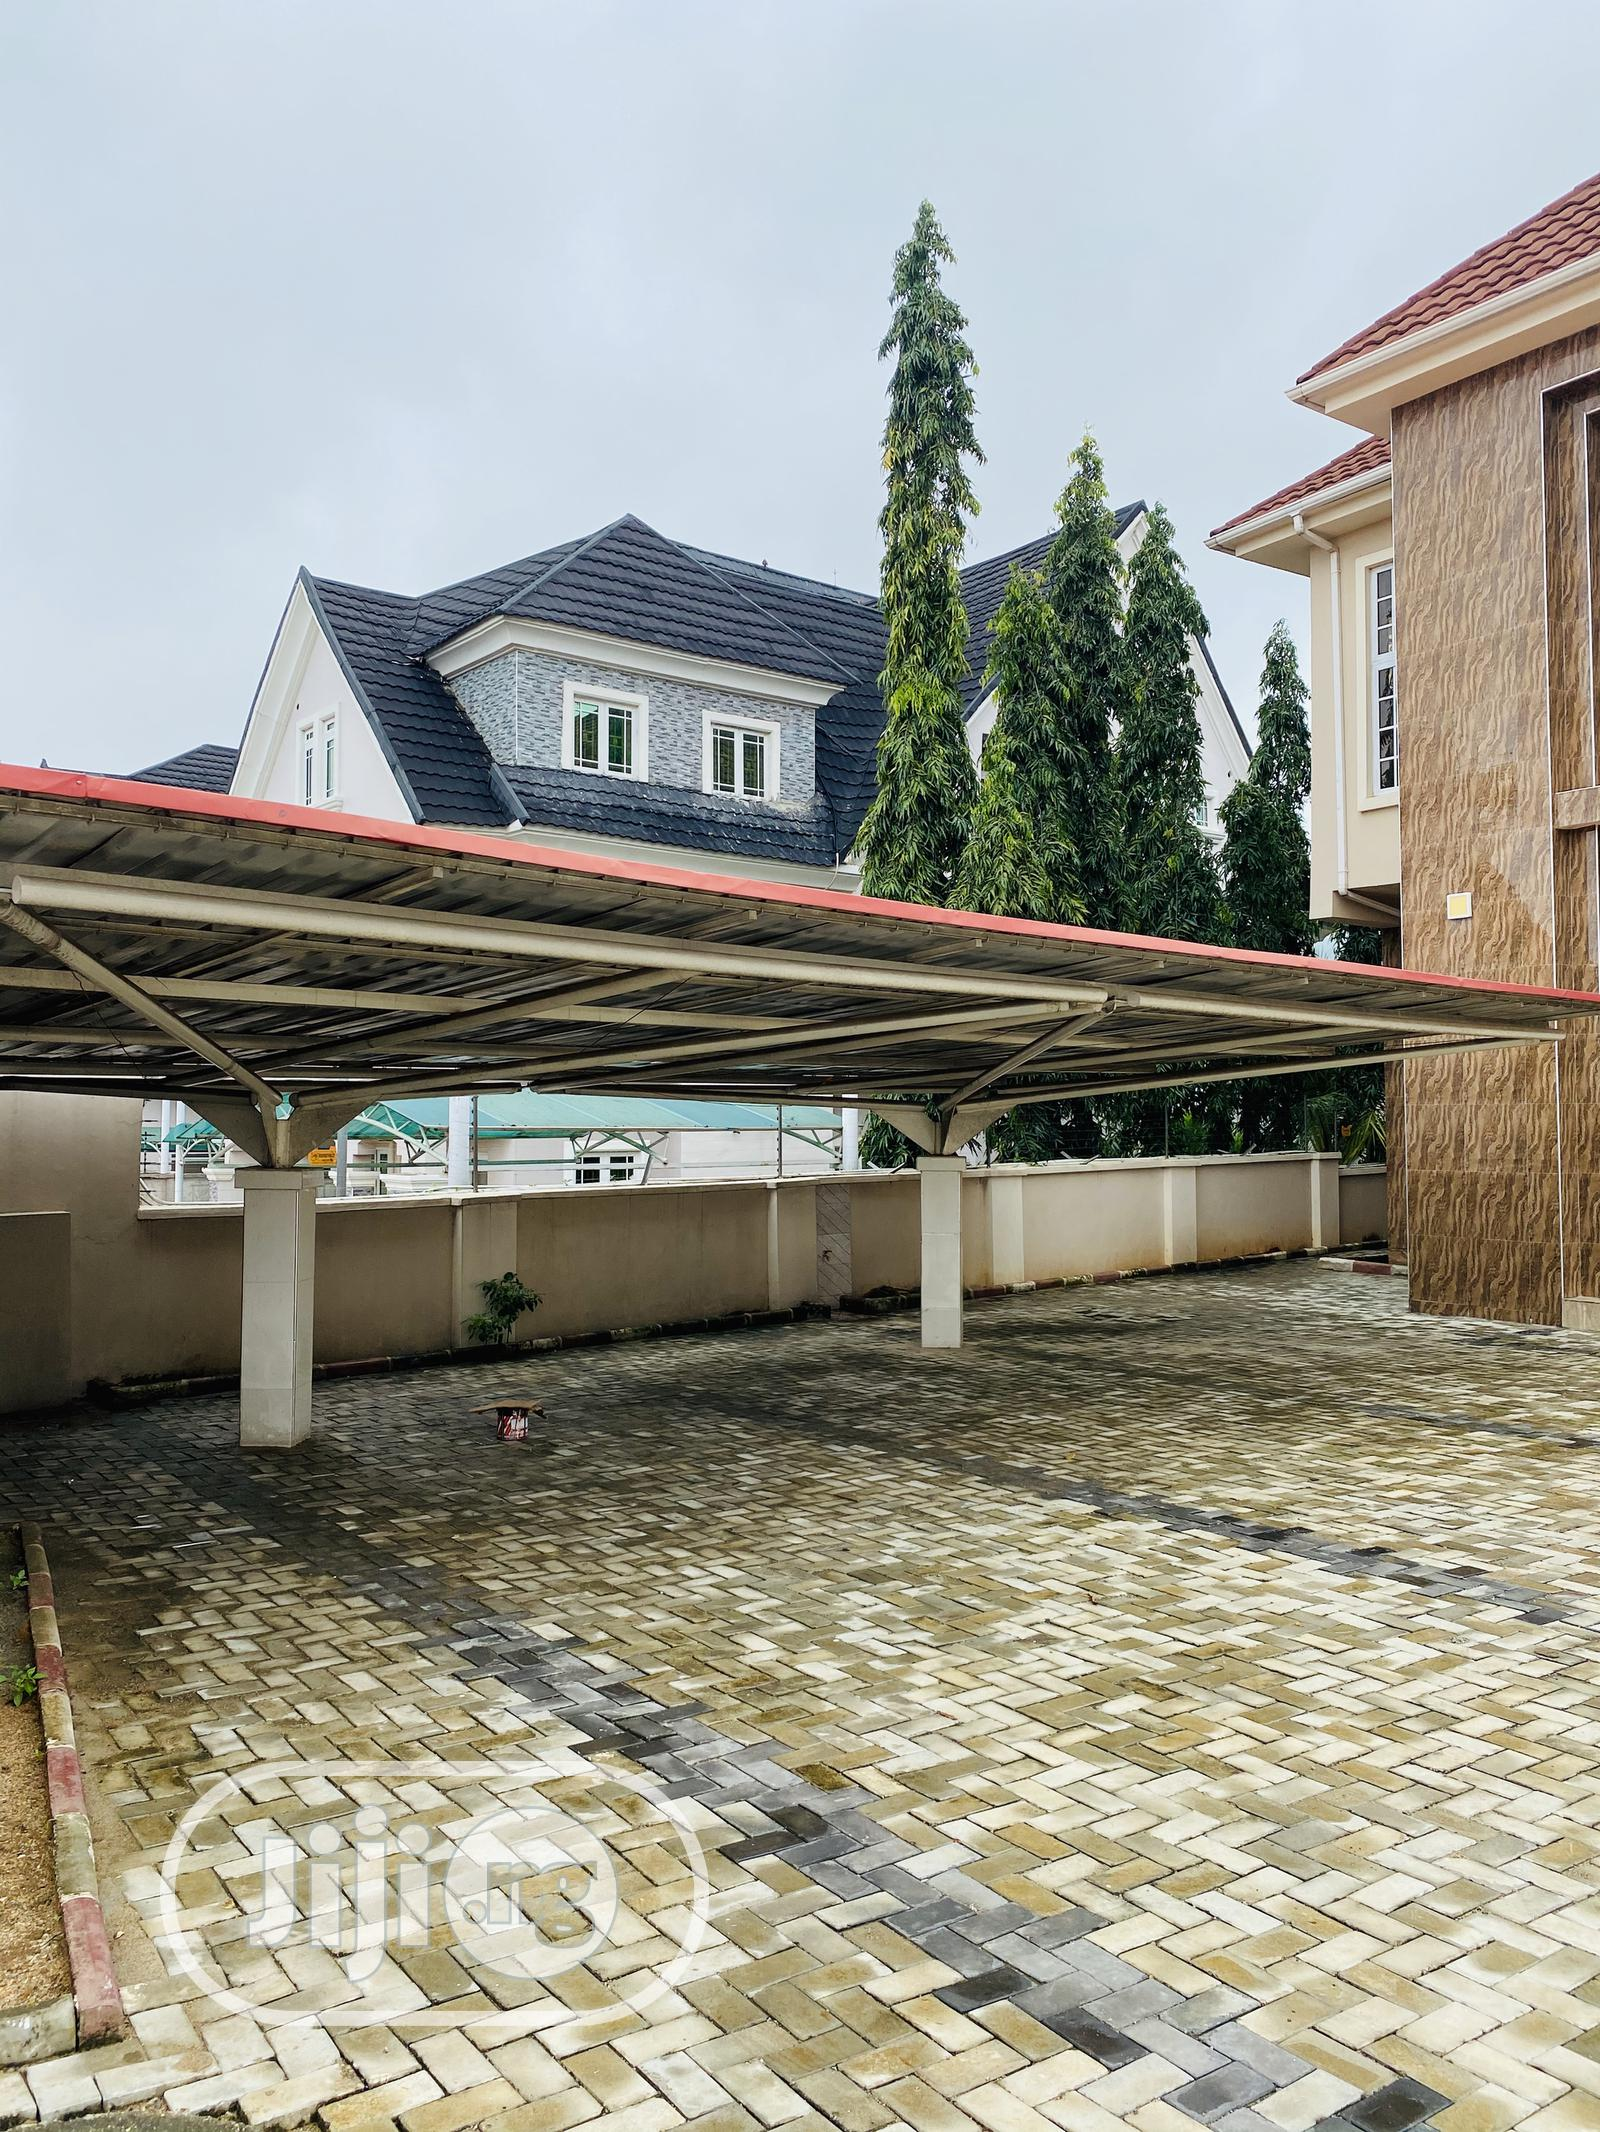 Archive: 5 Bedroom Duplex With Swimming Pool For Sale For 250m